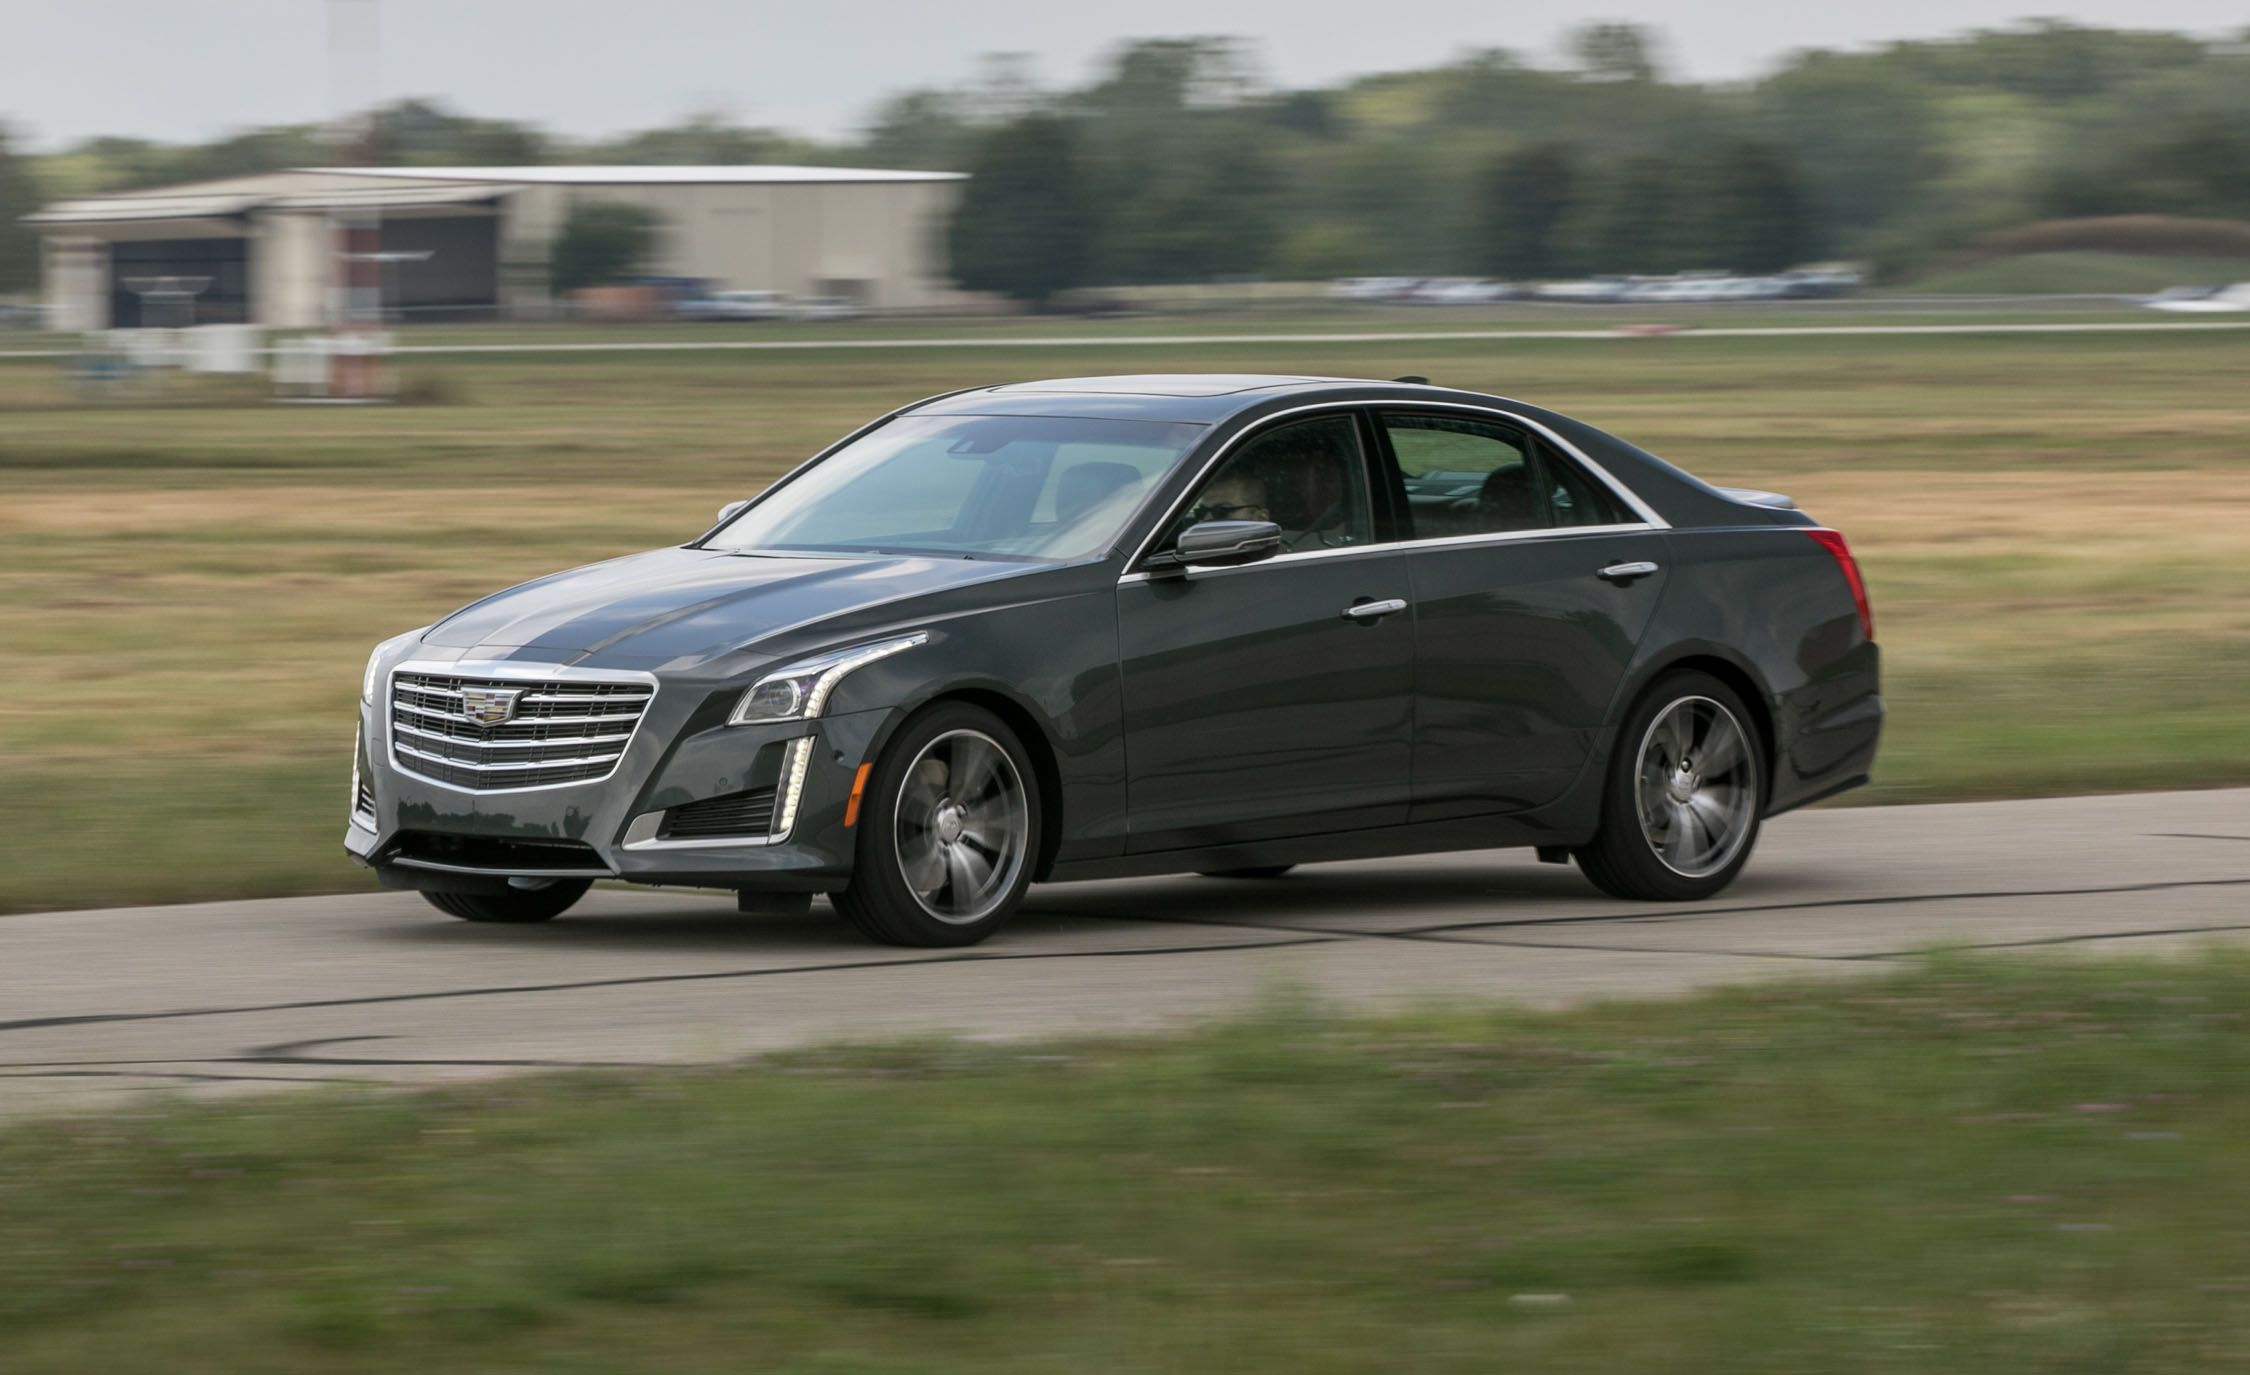 2017 Cadillac Cts 3 6 L Premium Luxury >> 2017 Cadillac Cts 3 6l Rwd Test Review Car And Driver